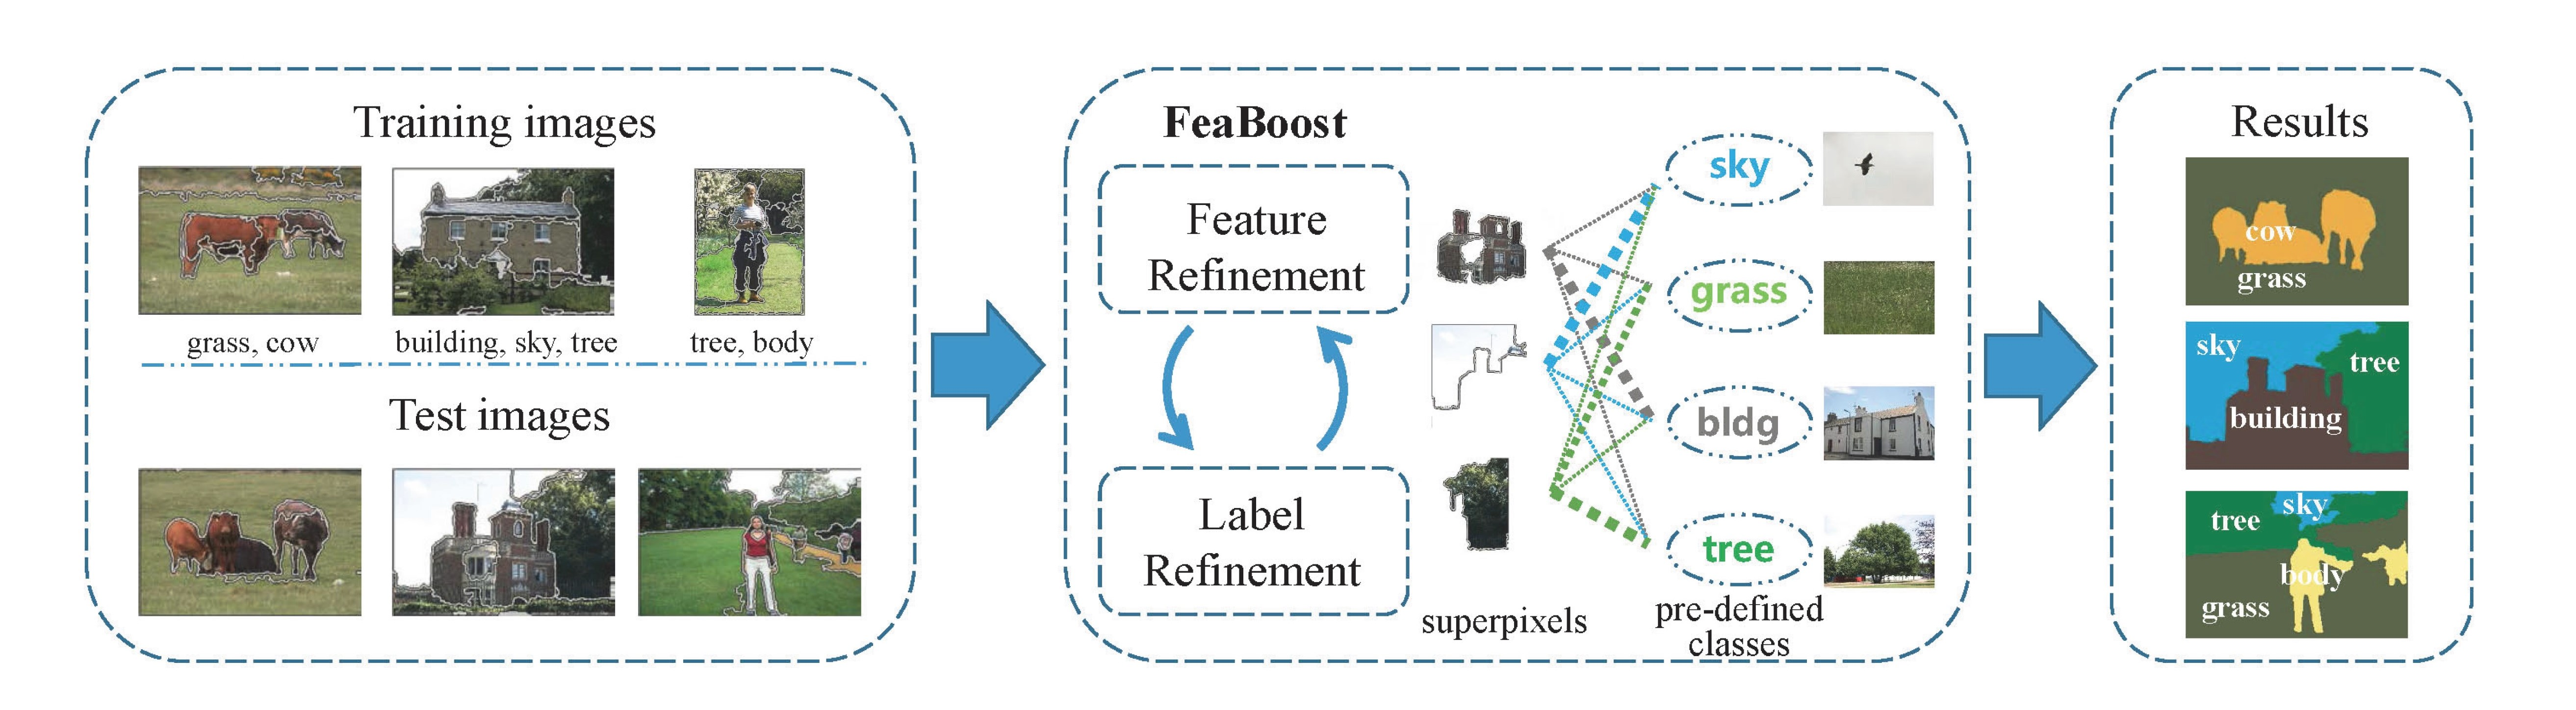 FeaBoost: Joint Feature and Label Refinement for Semantic Segmentation